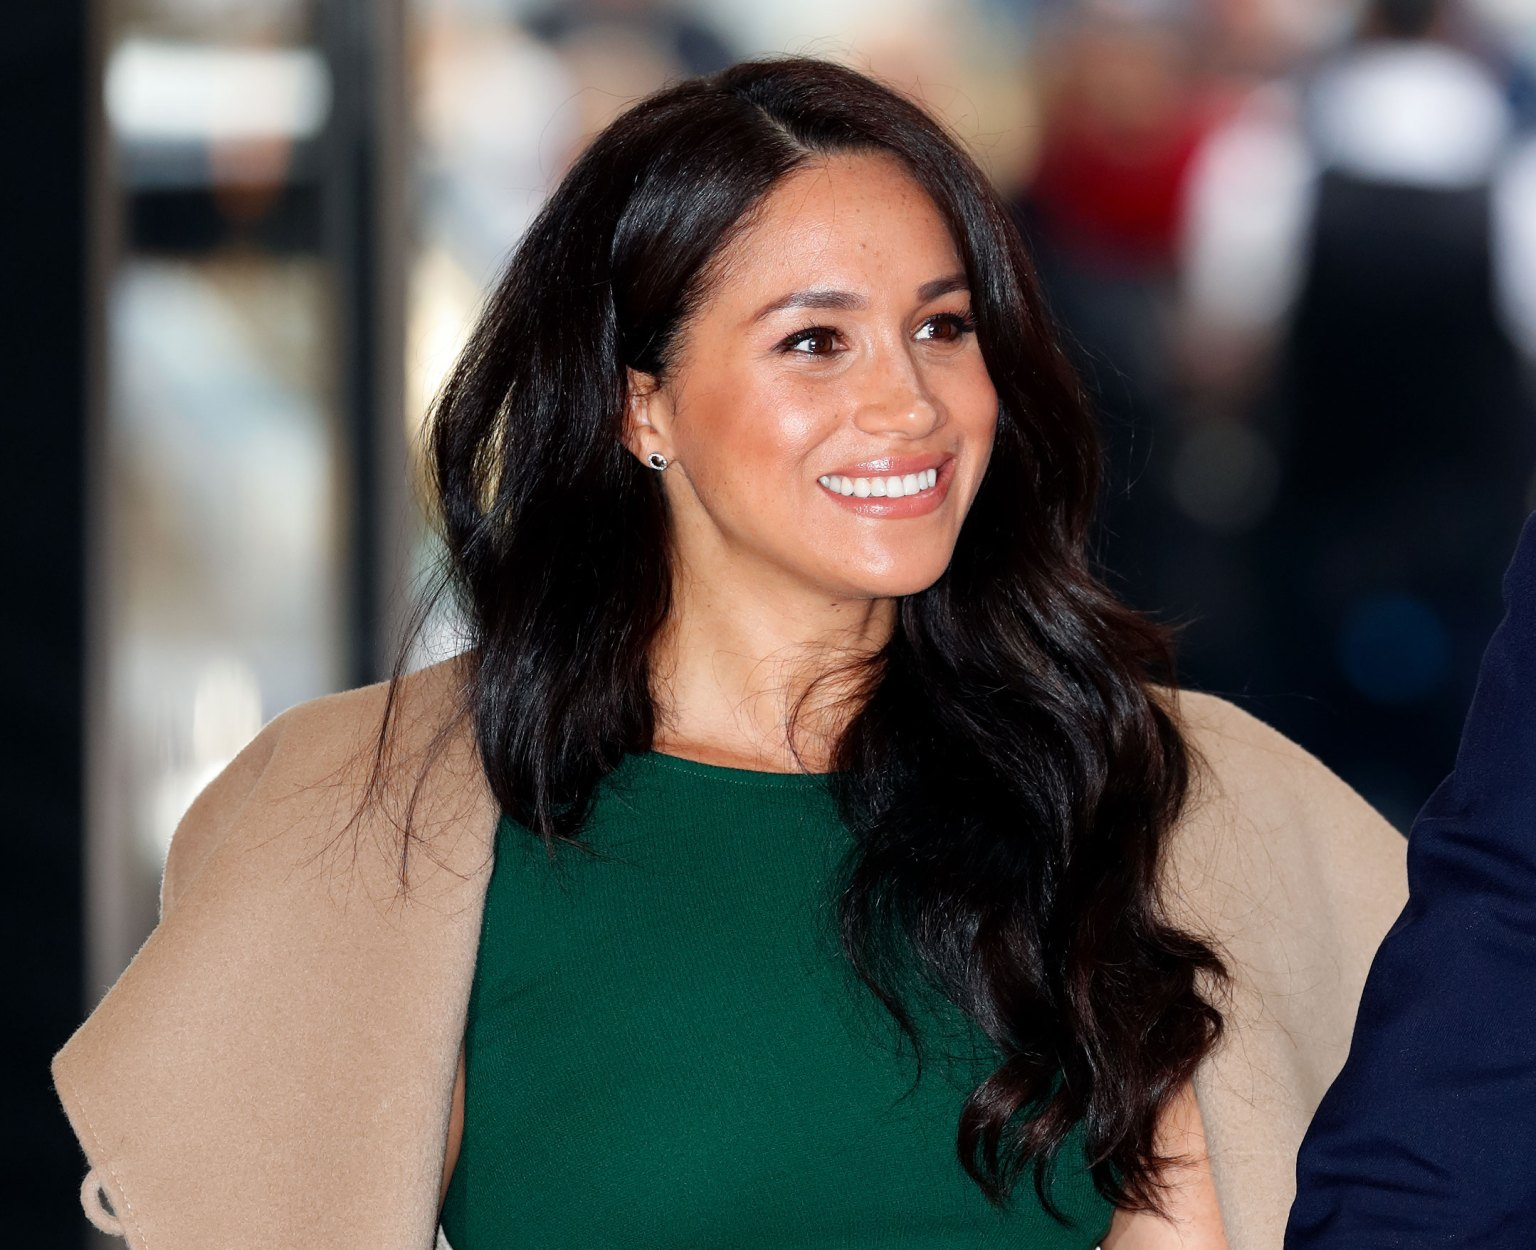 Netflix developing animated series with Meghan, Duchess of Sussex